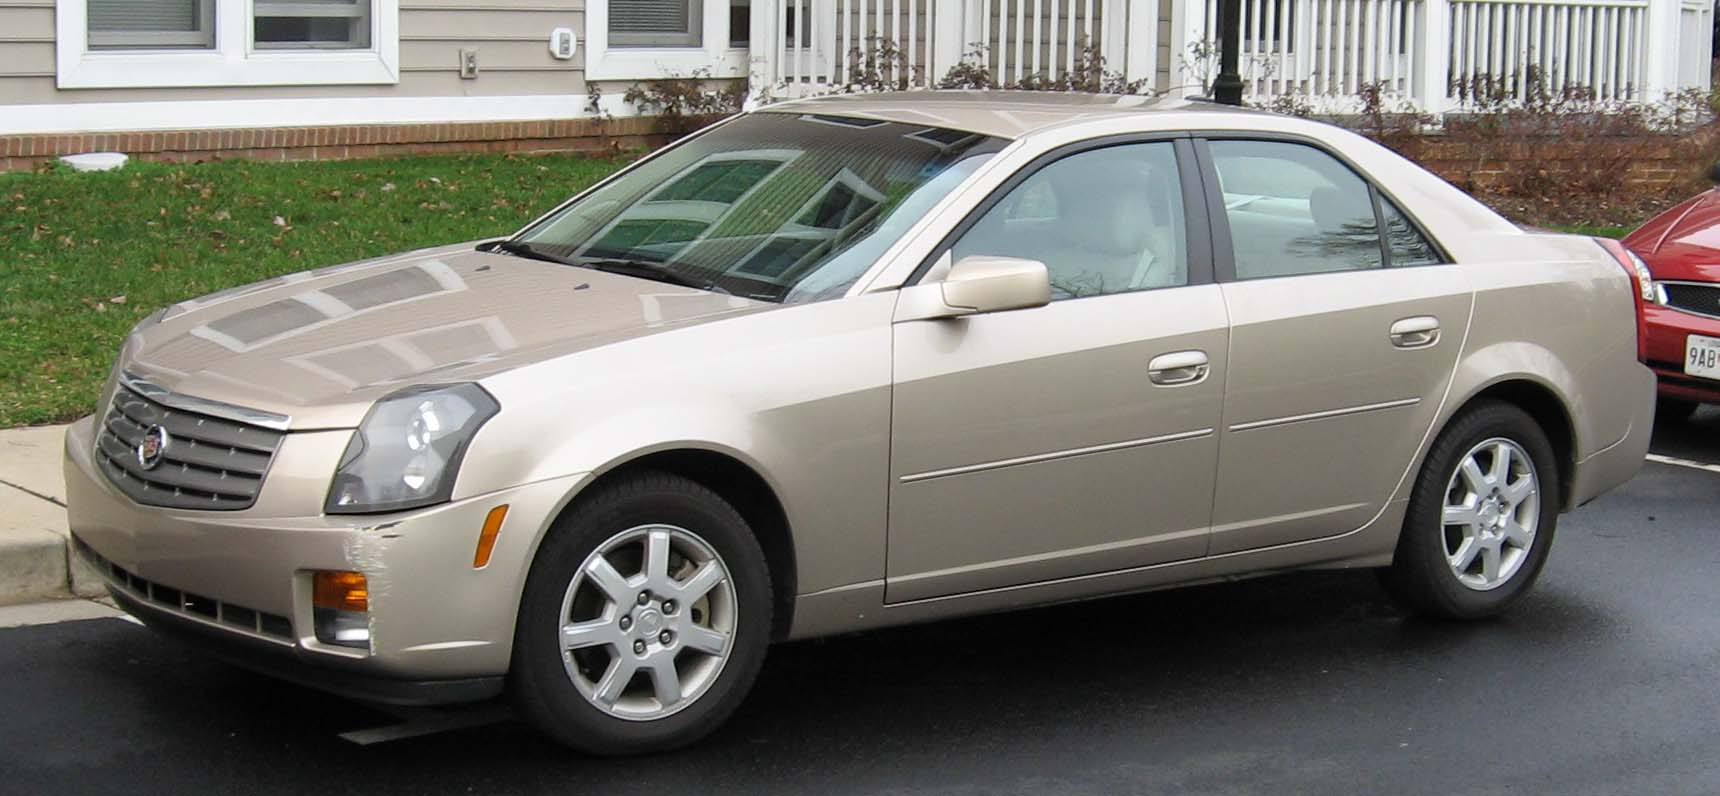 2007 Cadillac Cts Photos Informations Articles